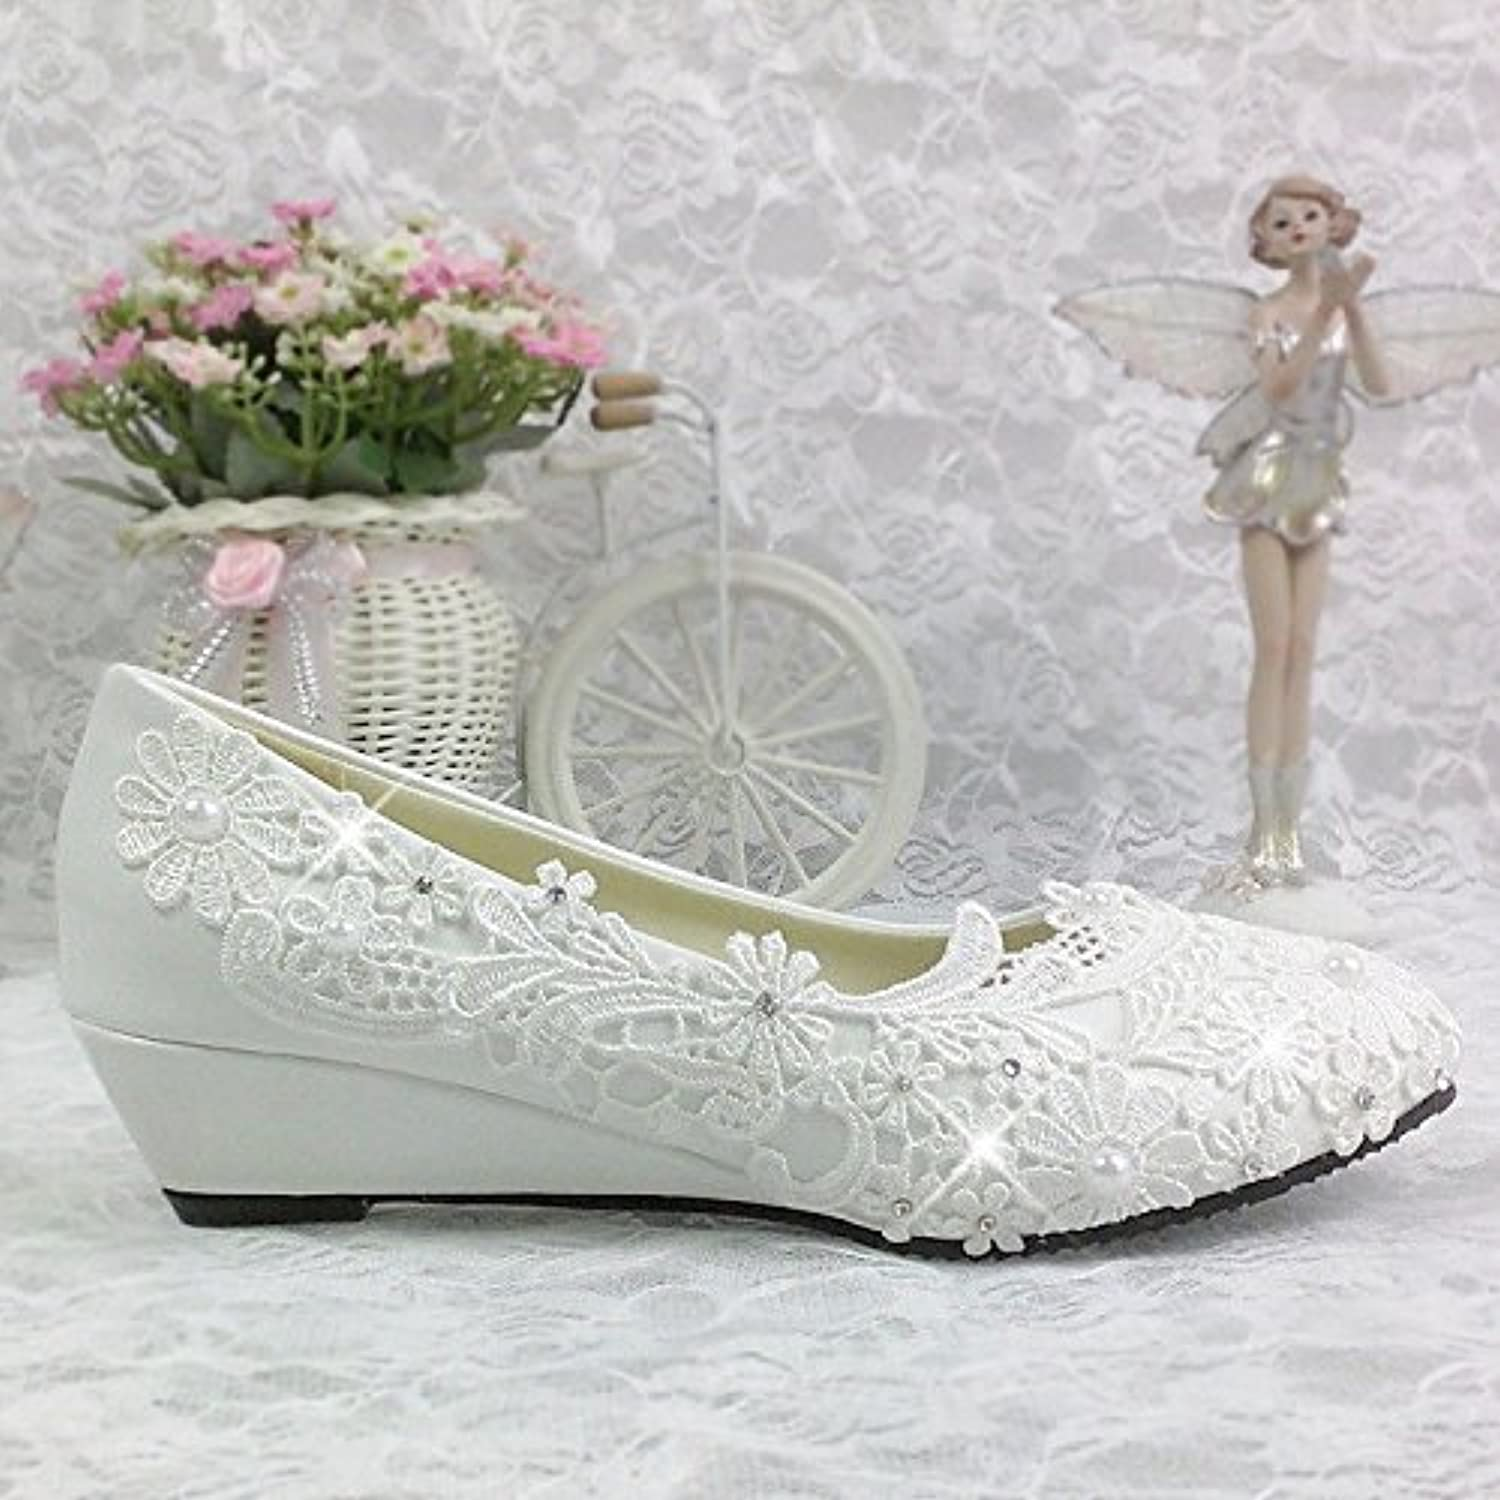 JINGXINSTORE Strasssteinen Bridal Pumpe Lace Weiß Wedding schuhe Wedding Party Pumps